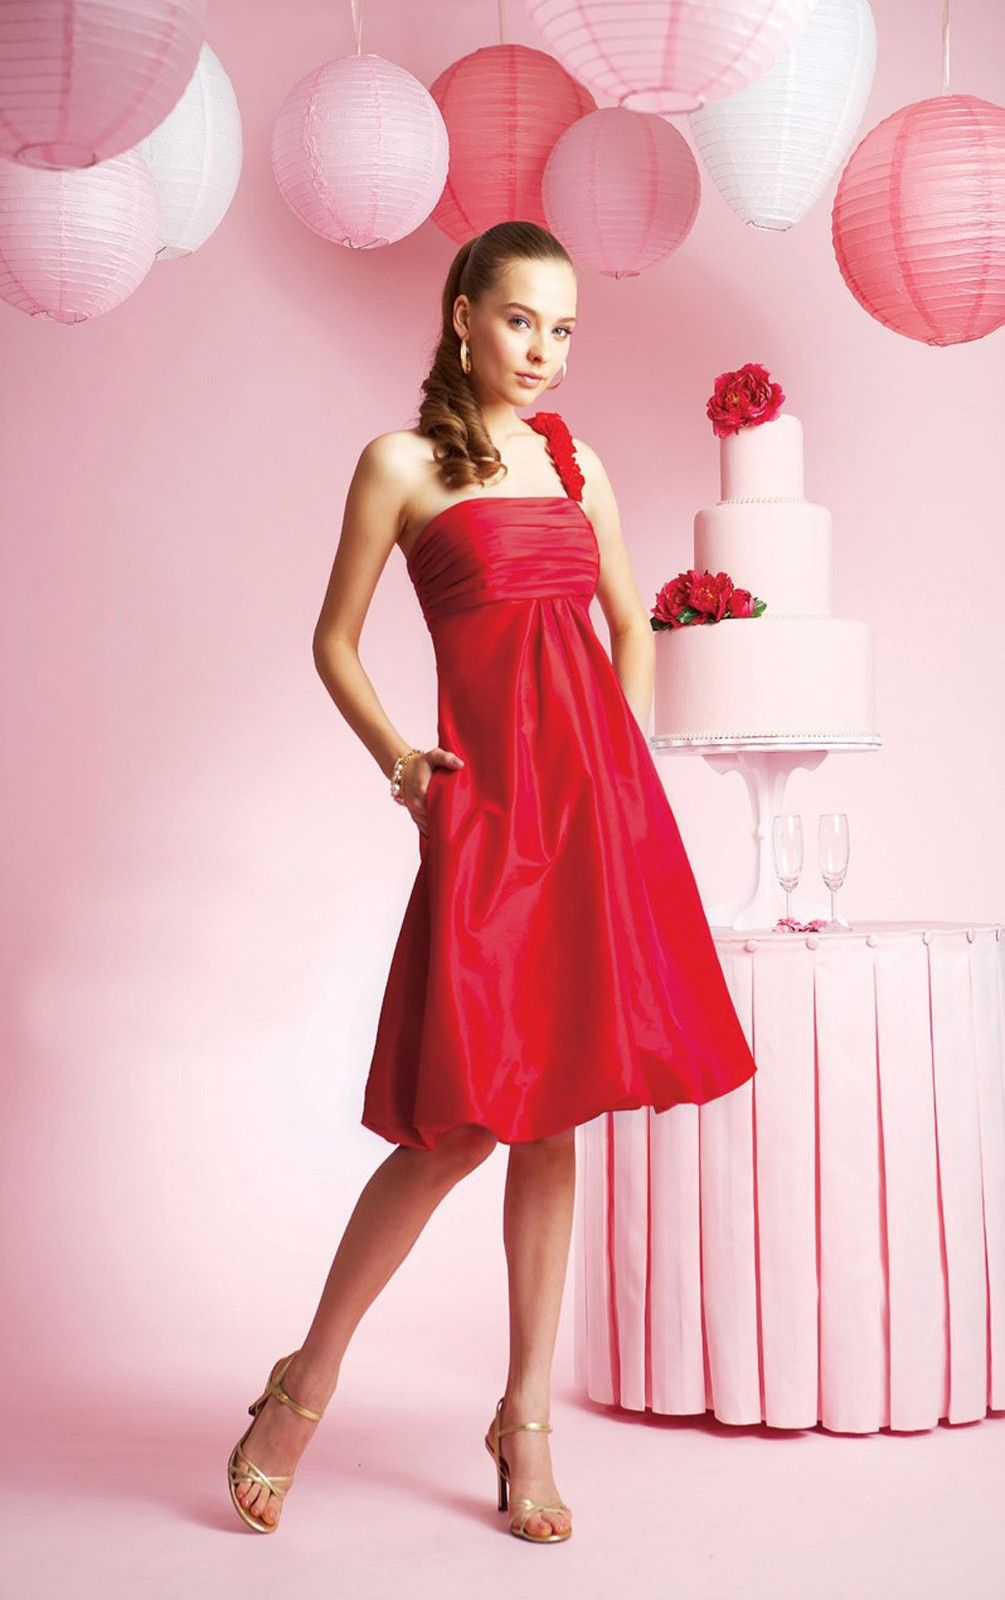 red bridesmaid dress | Our Wedding | Pinterest